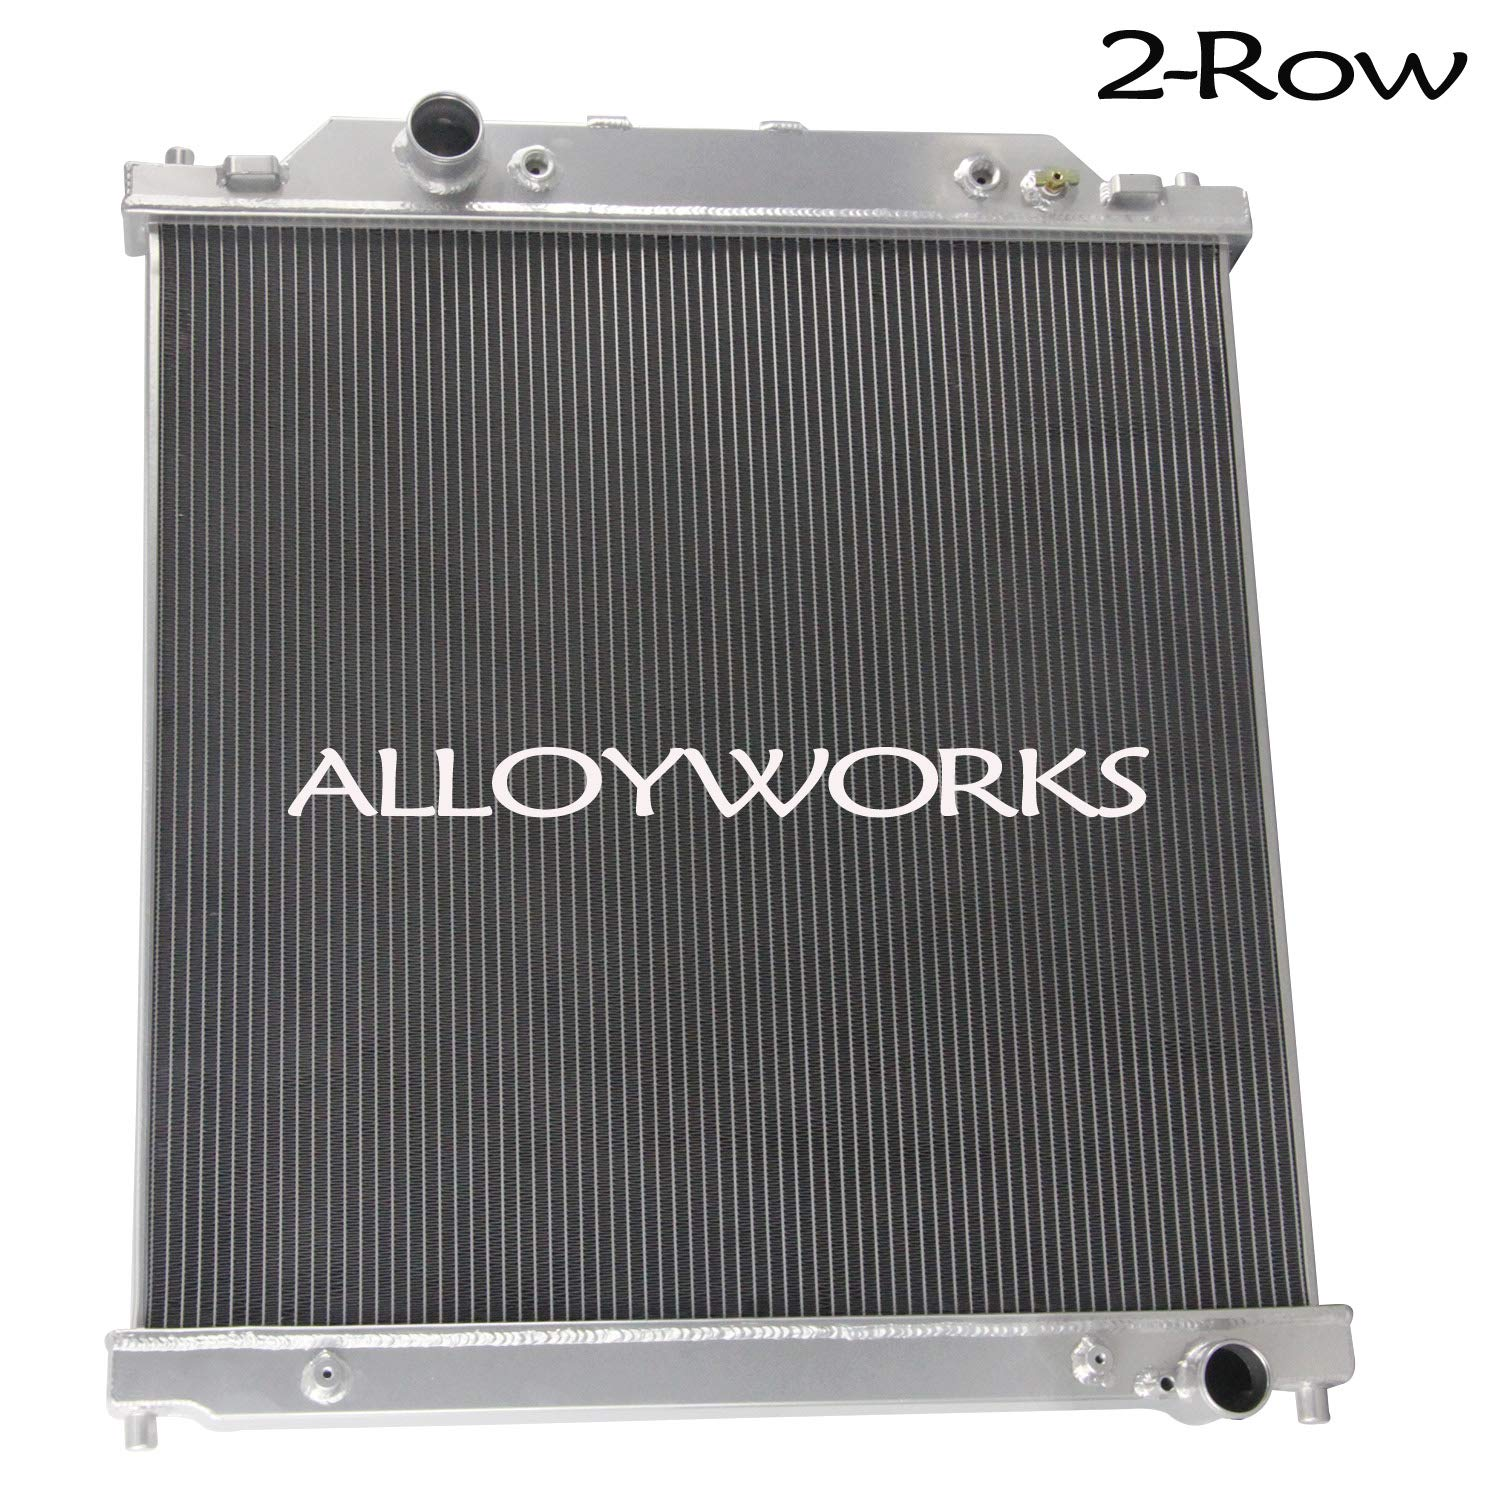 ALLOYWORKS 2 Row Aluminum Radiator for Ford F250 F350 Super Duty 2003-2007/Ford Excursion 2003-2005 6.0L Powerstroke Engine